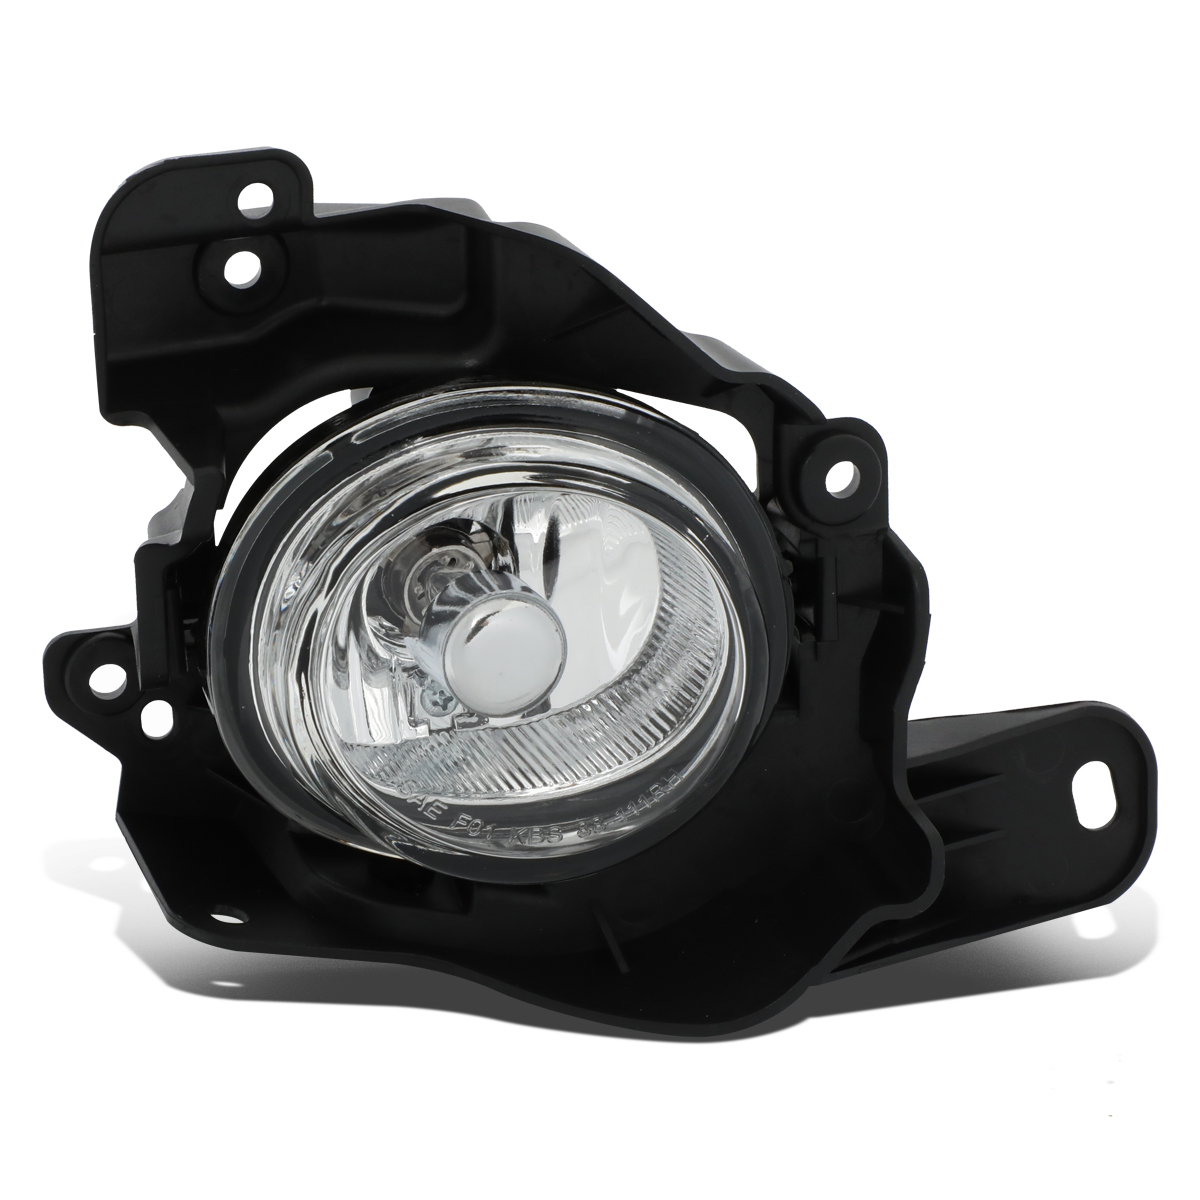 For 10-13 Mazdaspeed 3 Front Bumper Fog Light/Lamp Factory Style Right Side 11 12